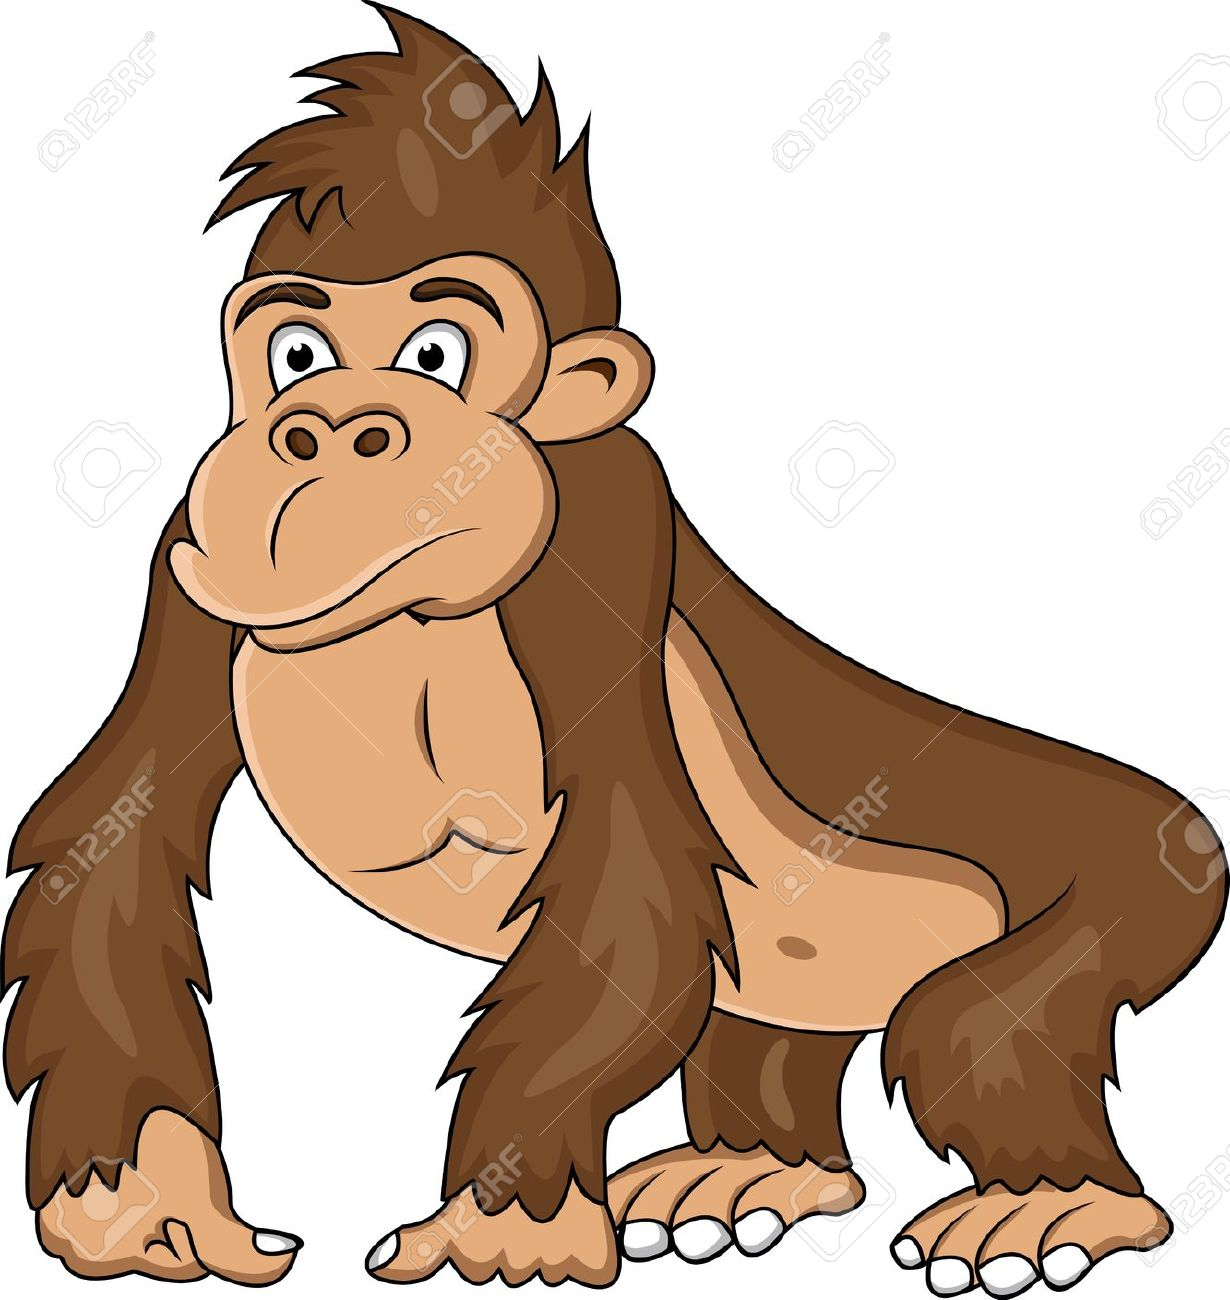 Ape clipart #8, Download drawings